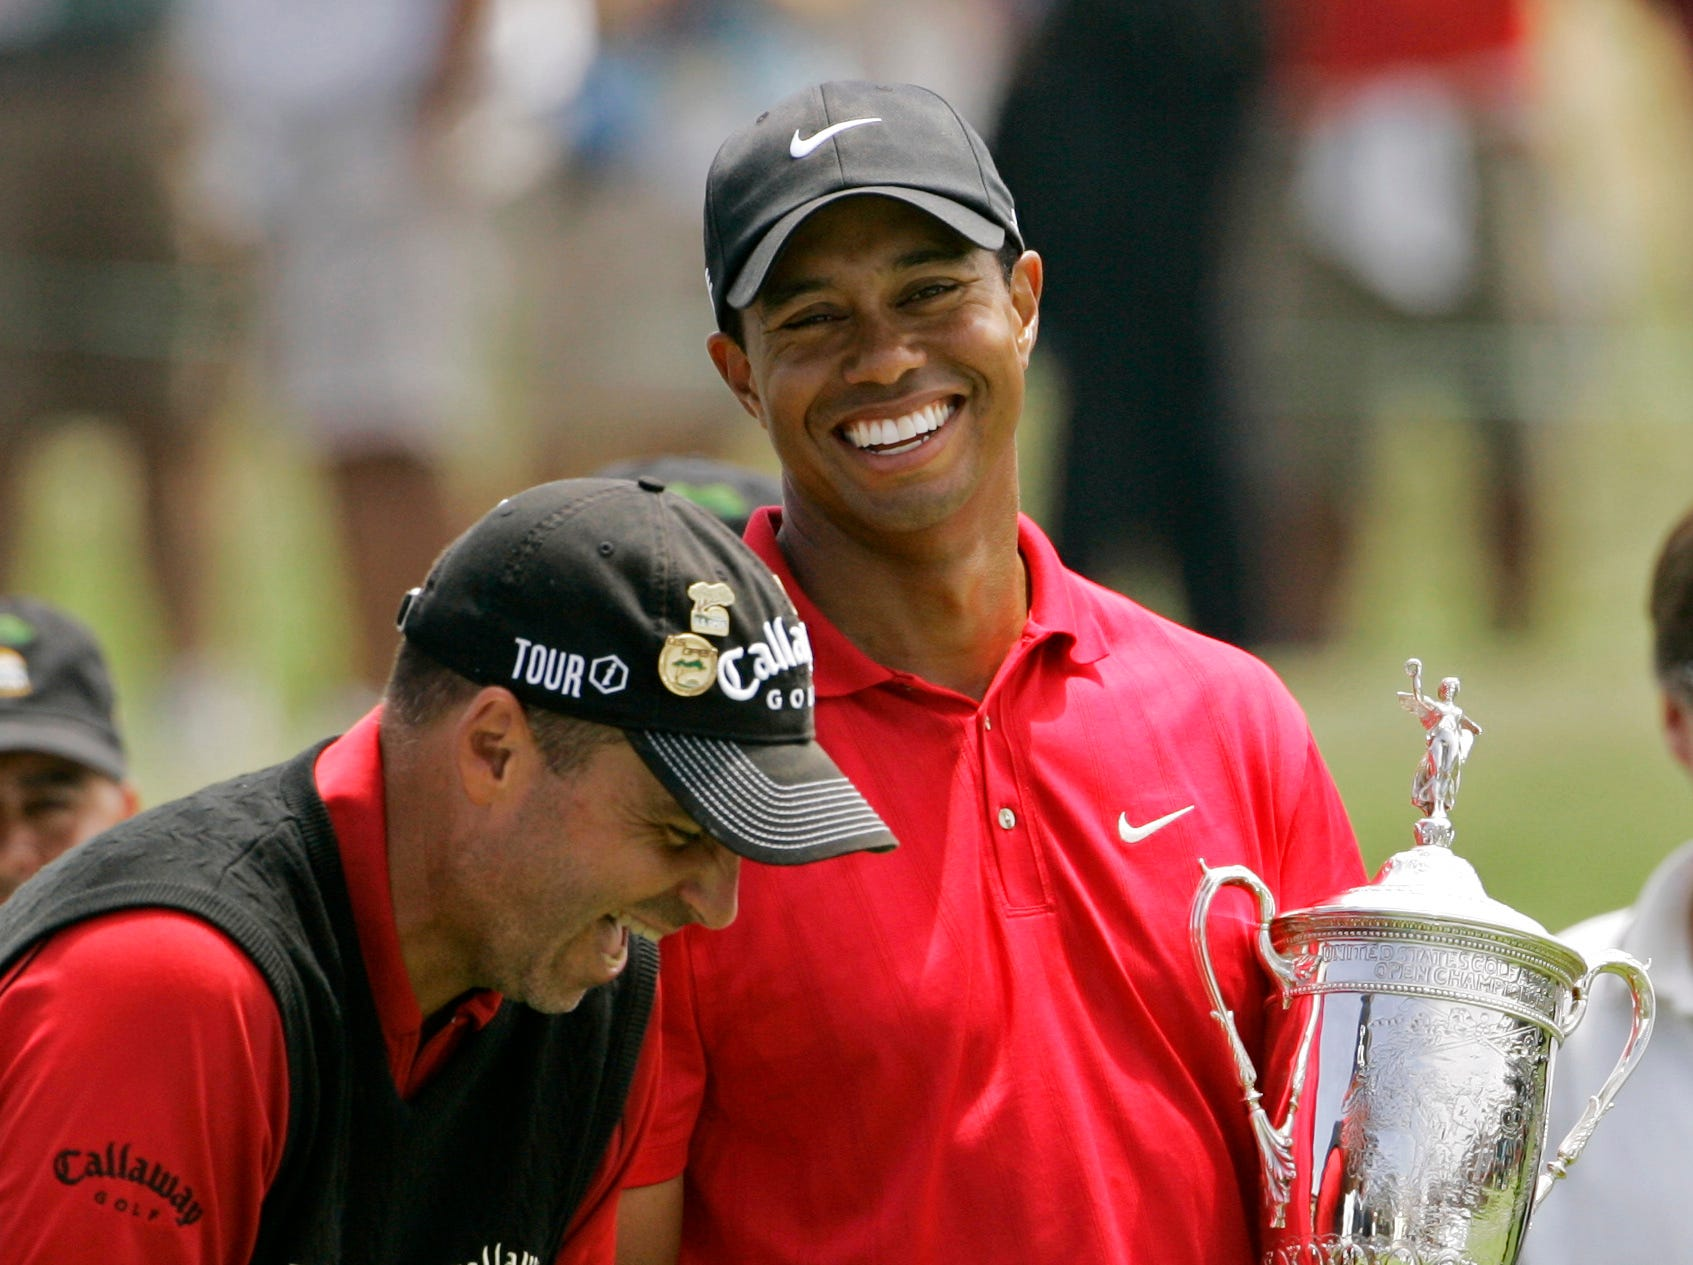 Rocco Mediate laughs with Tiger Woods after Woods' US Open victory following an 18-hole playoff round at Torrey Pines Golf Course in San Diego.  (AP Photo/Charlie Riedel)